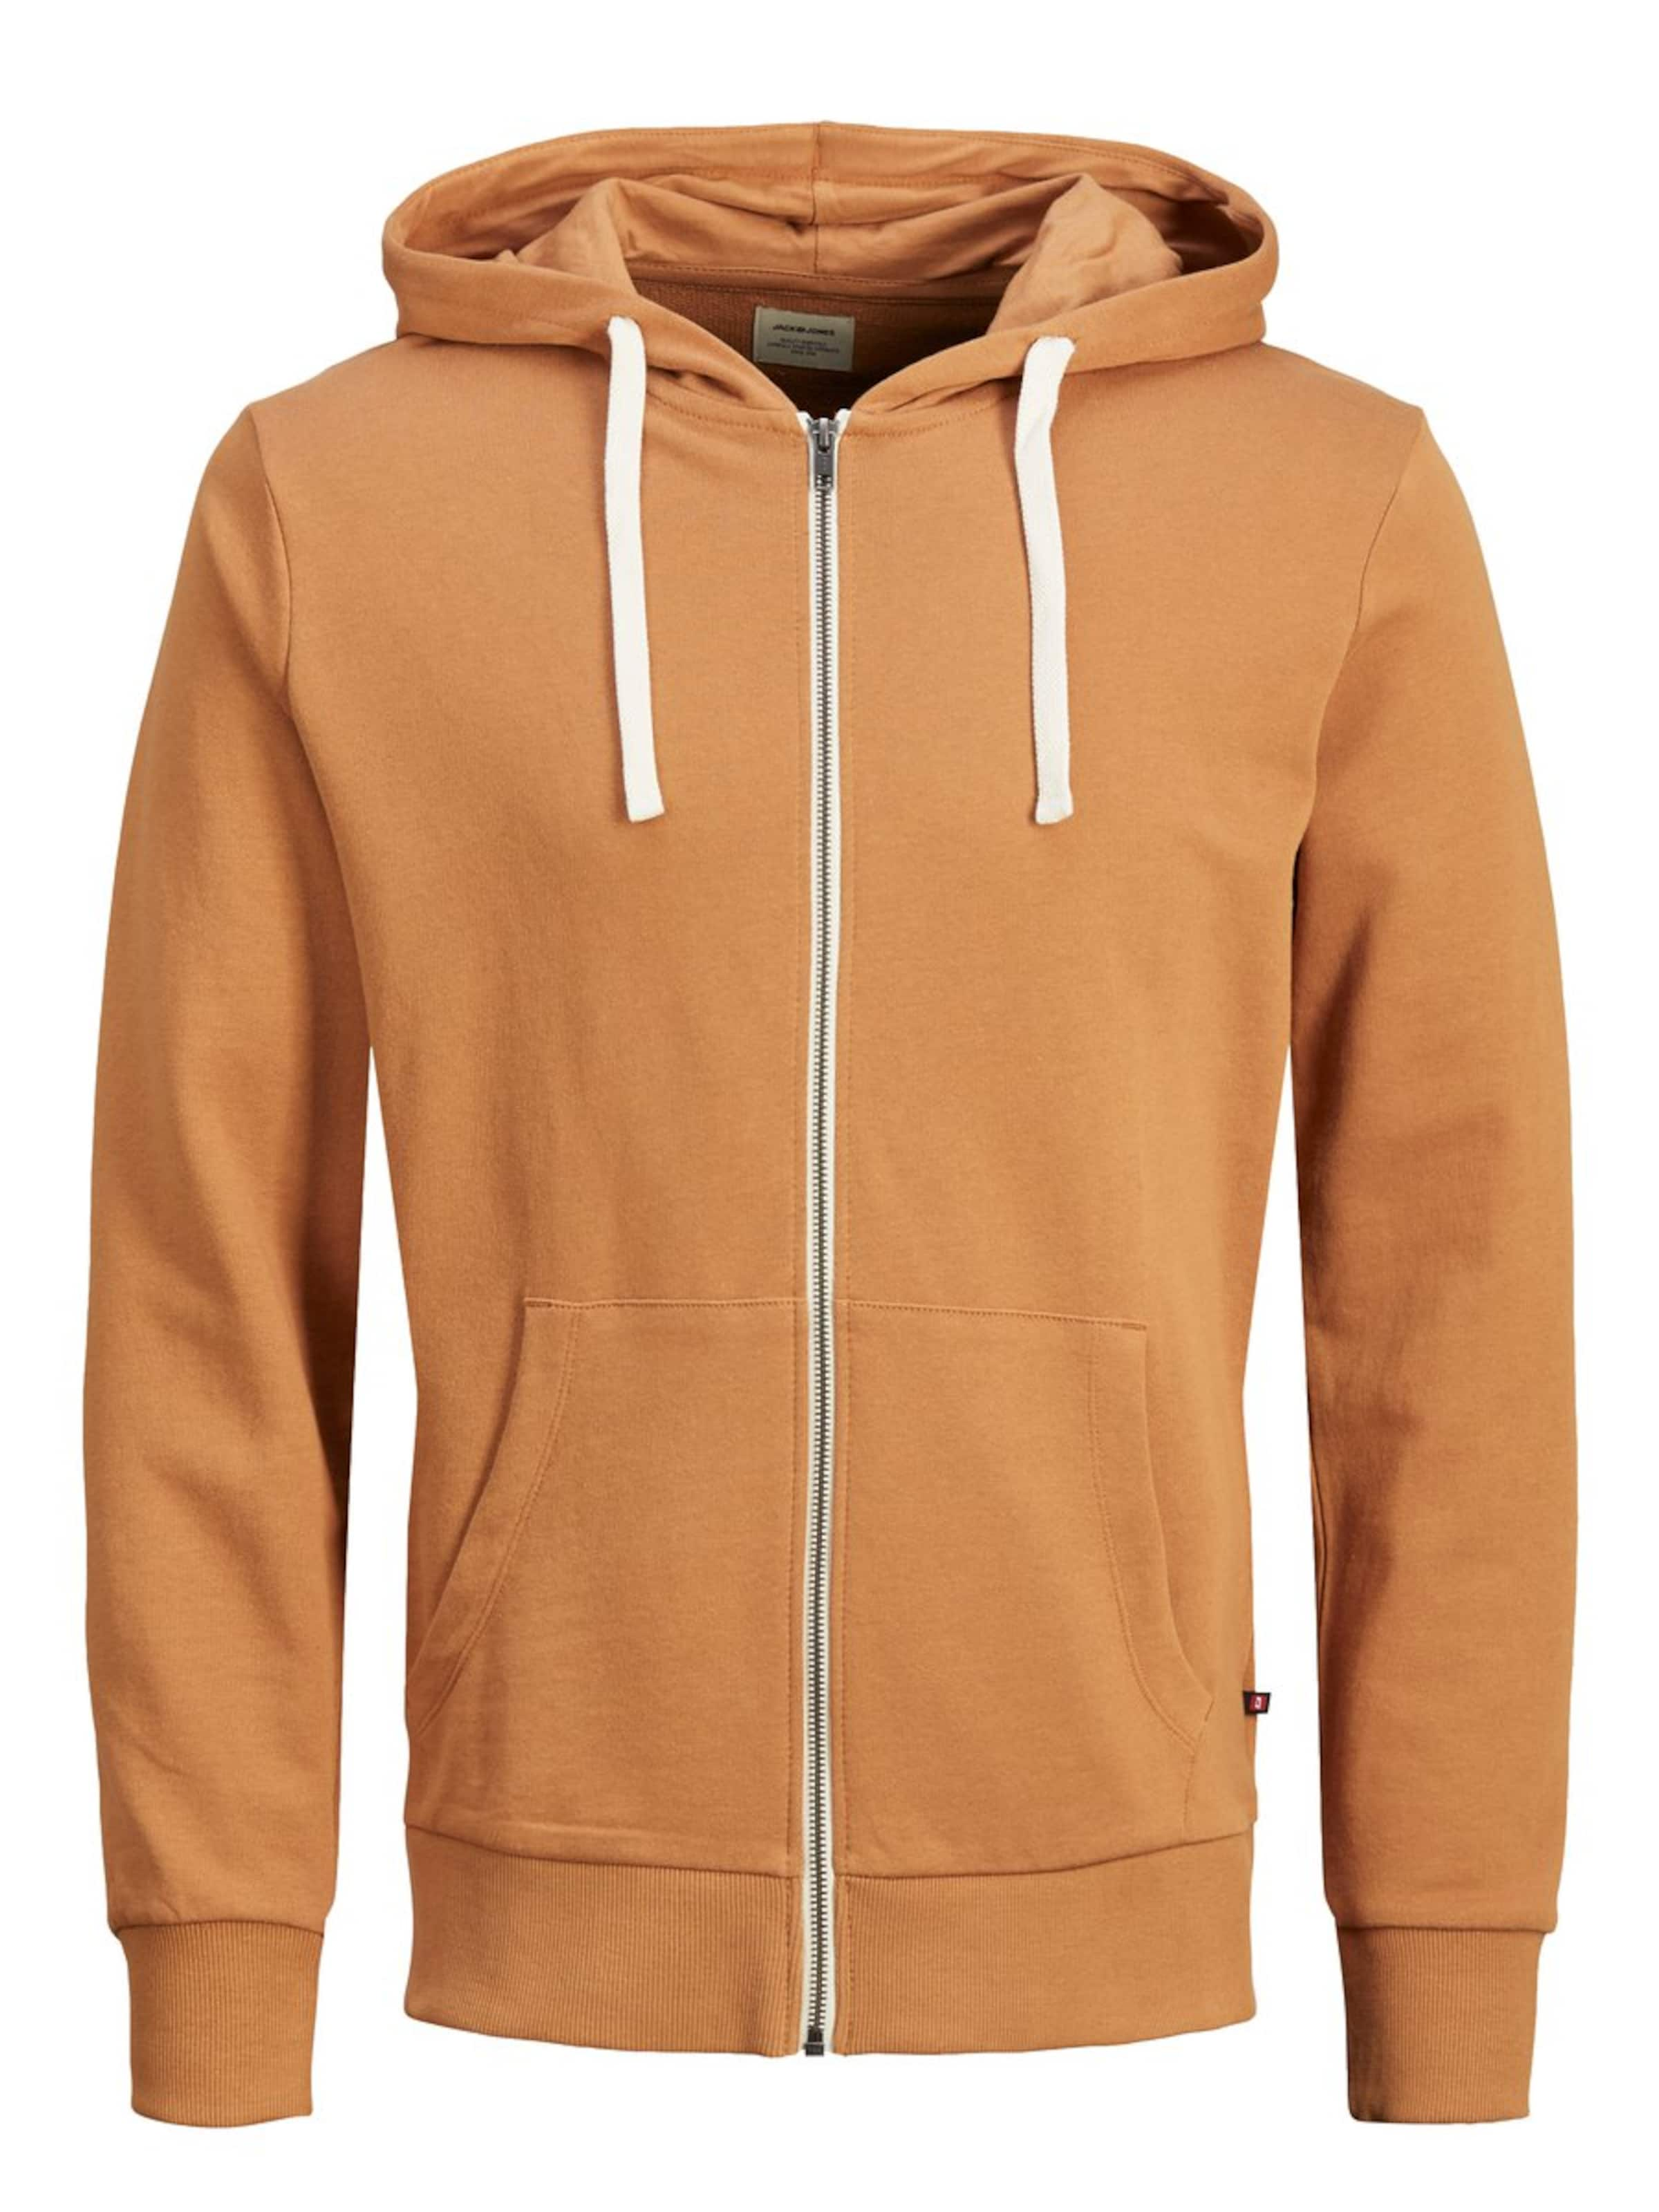 Jones Jackamp; CognacWeiß Jackamp; In CognacWeiß Sweatjacke Jones Sweatjacke In 8n0OwPkX